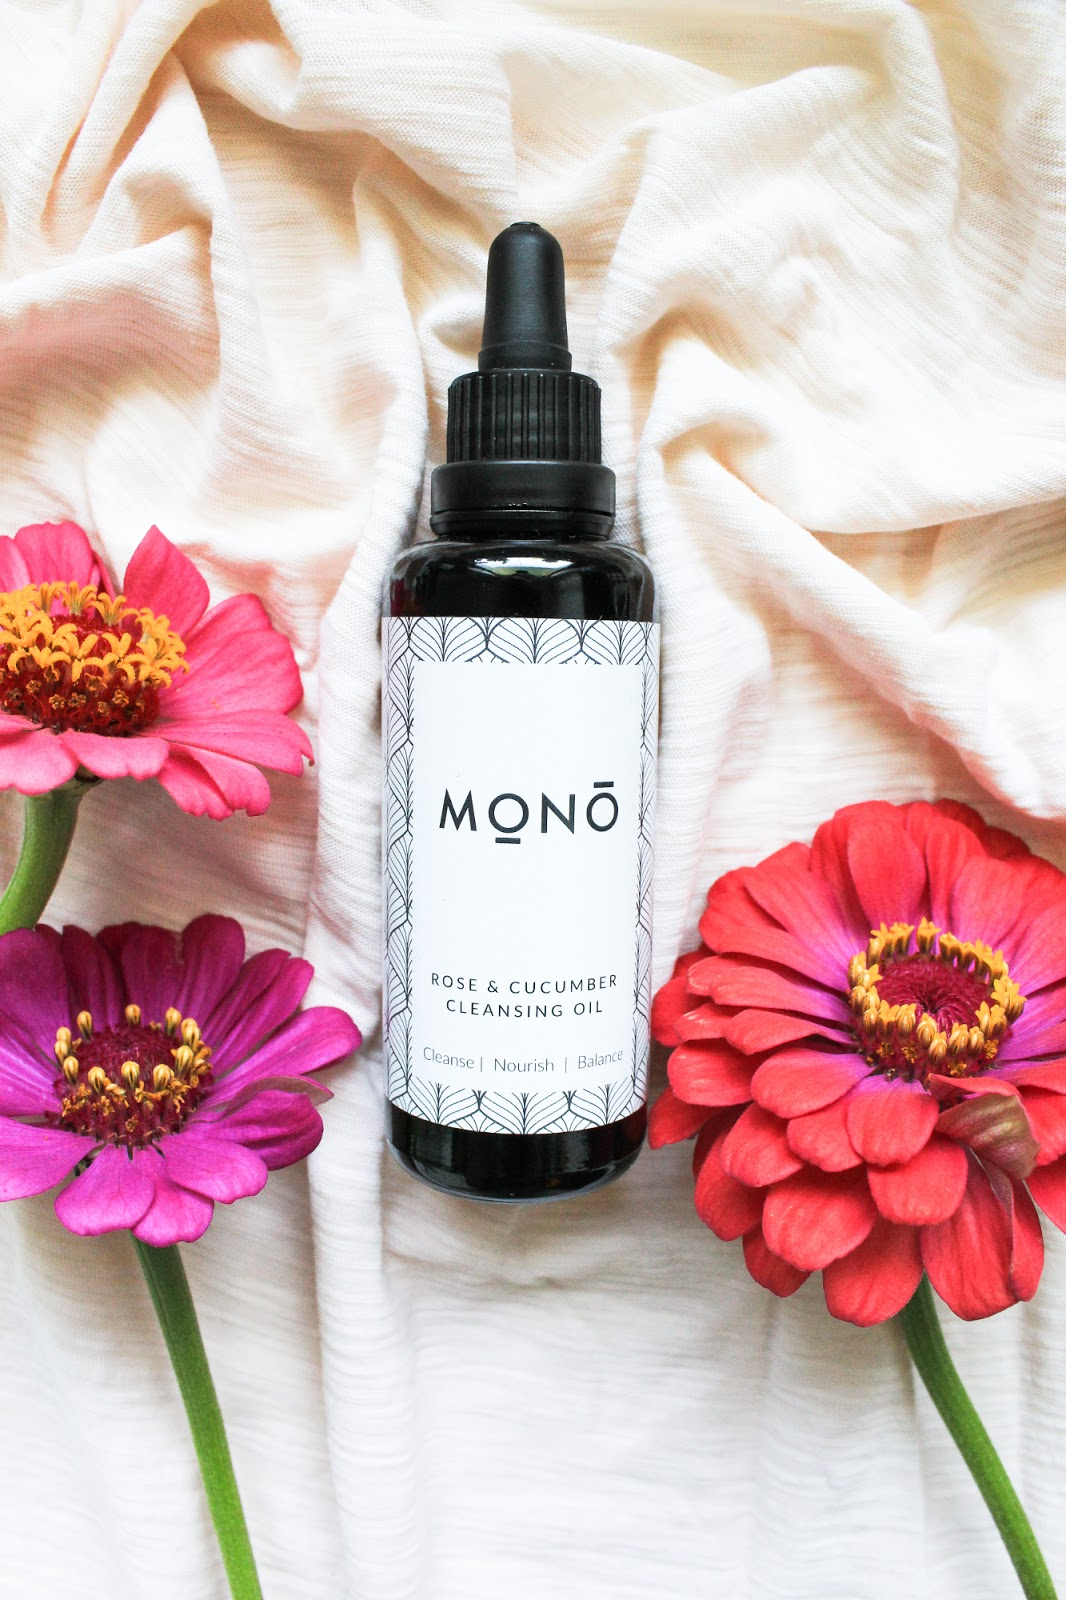 Mono Naturoils Rose & Cucumber Cleansing Oil. Ethical, vegan, organic, natural, infused with crystals, clear quartz